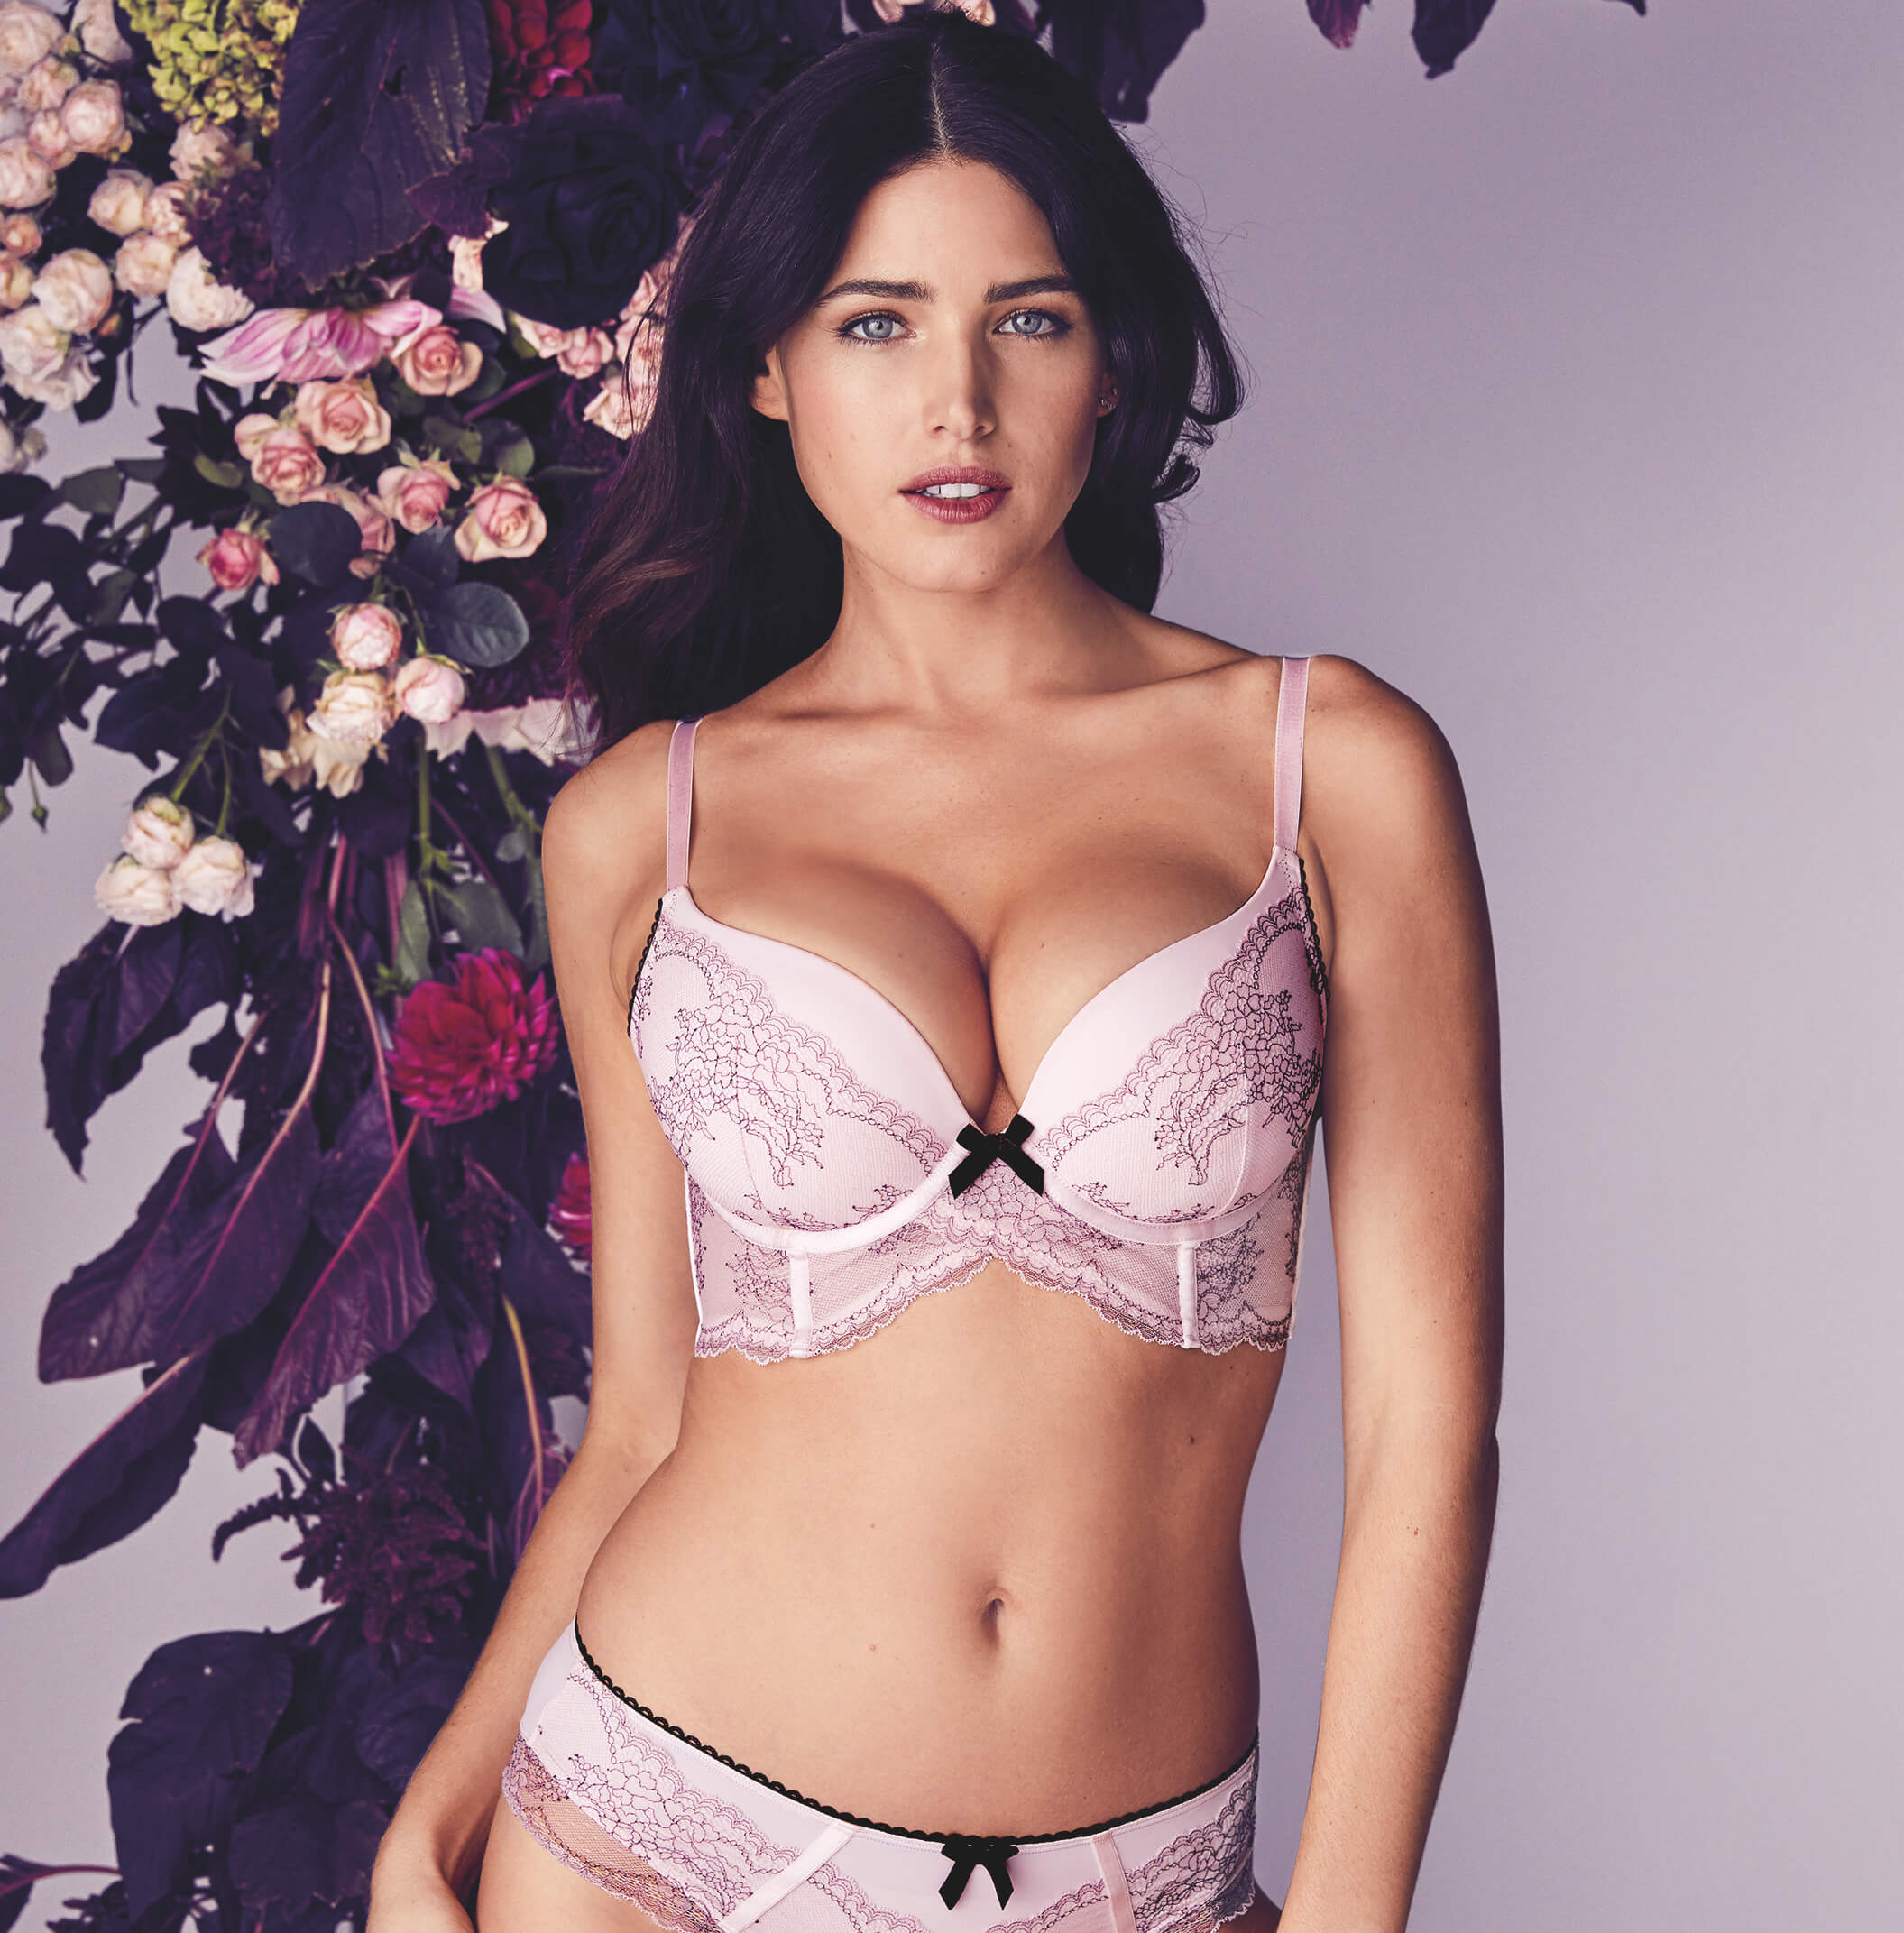 33bfeacaa2 Bras N Things launch spring inspired Delicate Blooms collection - Melissa  Hoyer